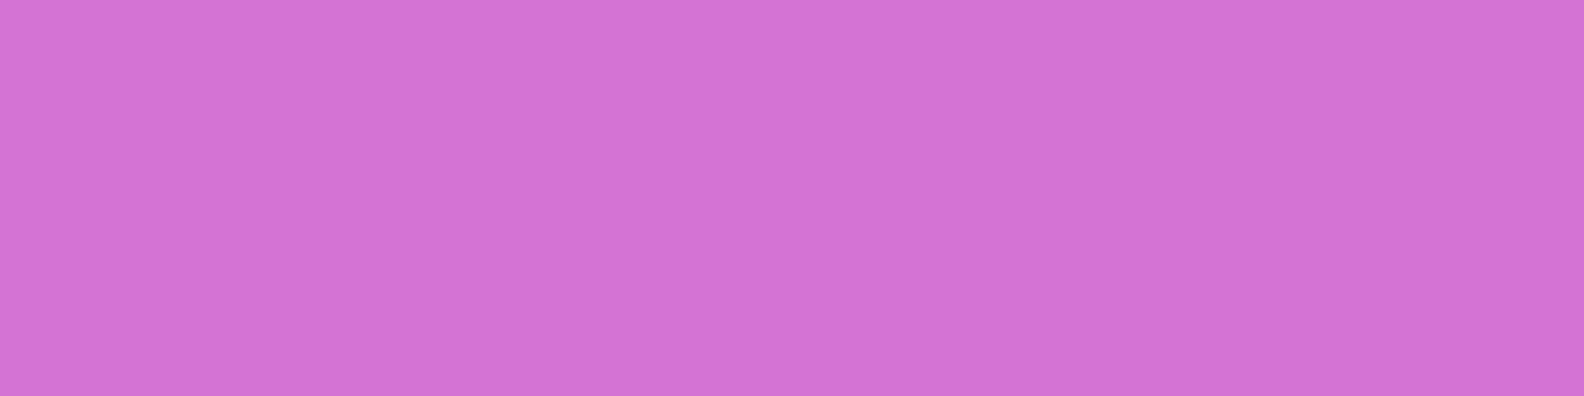 1584x396 French Mauve Solid Color Background